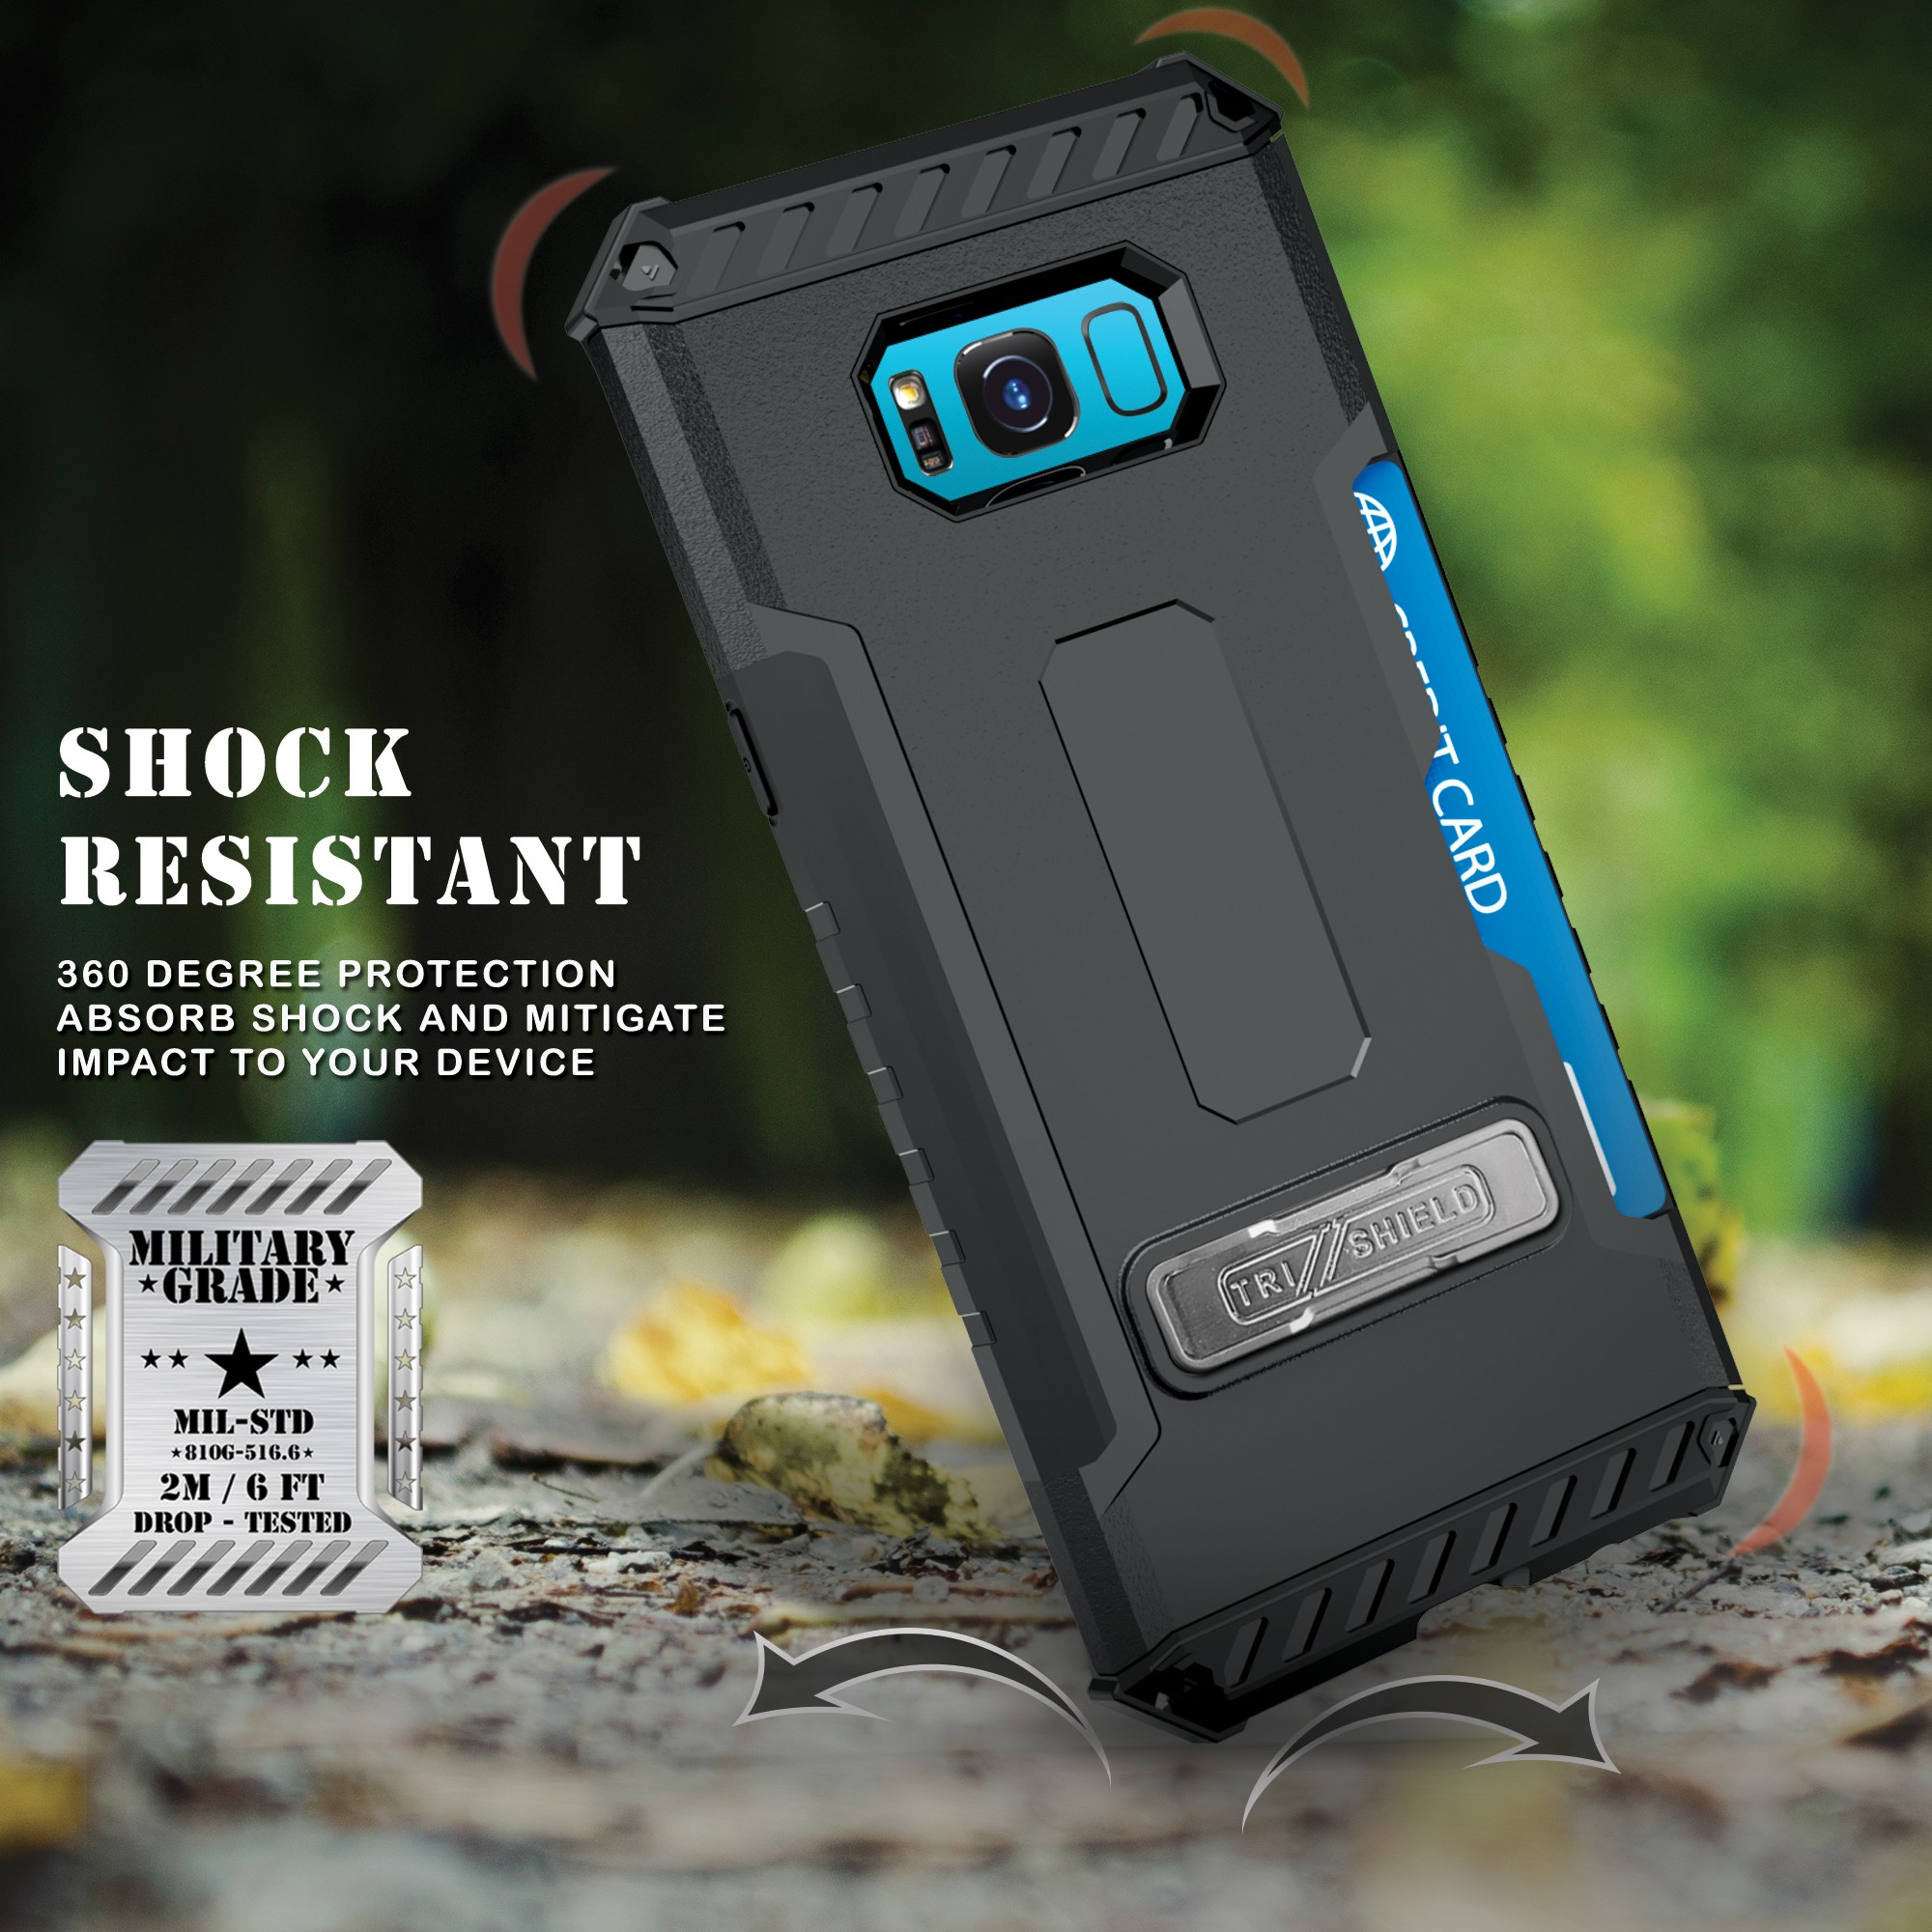 cheaper 97277 fee7e Details about TRI-SHIELD CASE KICKSTAND CARD SLOT LANYARD FOR SAMSUNG  GALAXY S8 PLUS, S8+